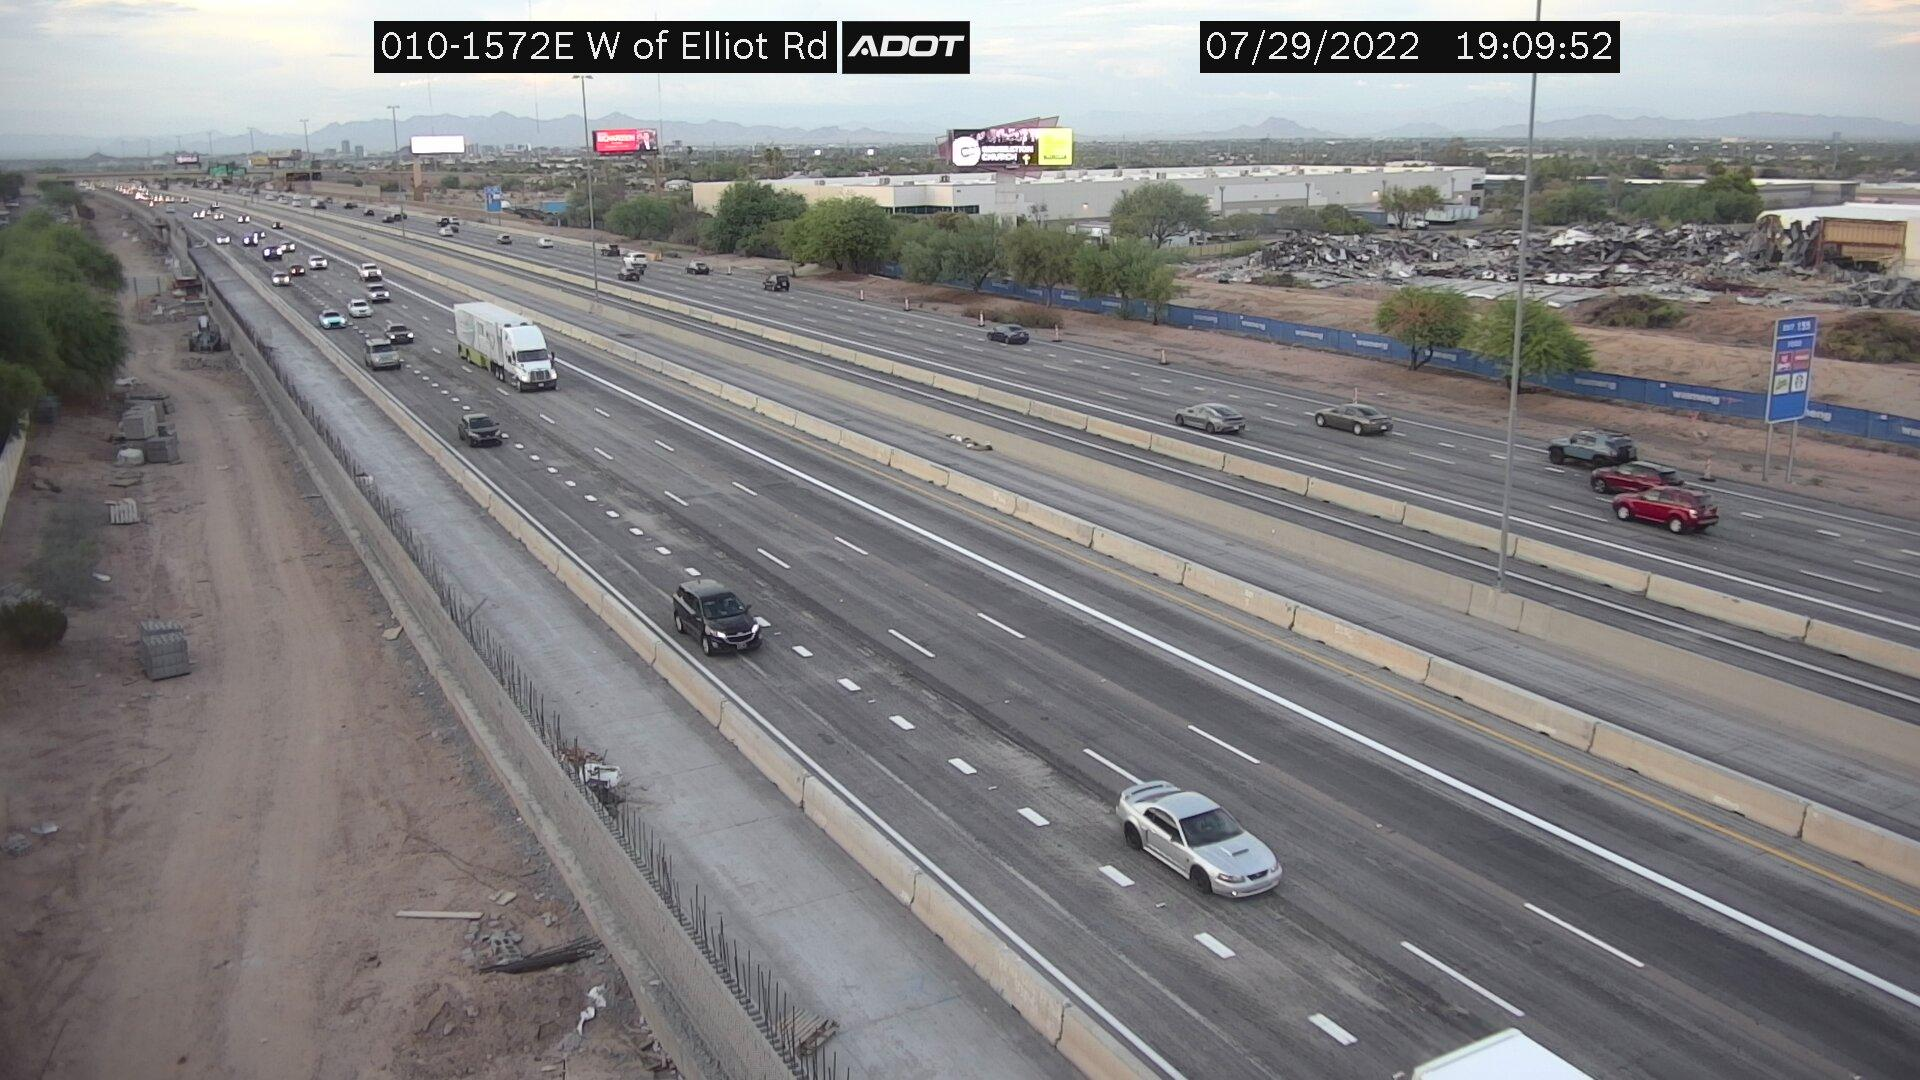 Webcam Desert Villas: Interstate 10 west of Elliot Rd